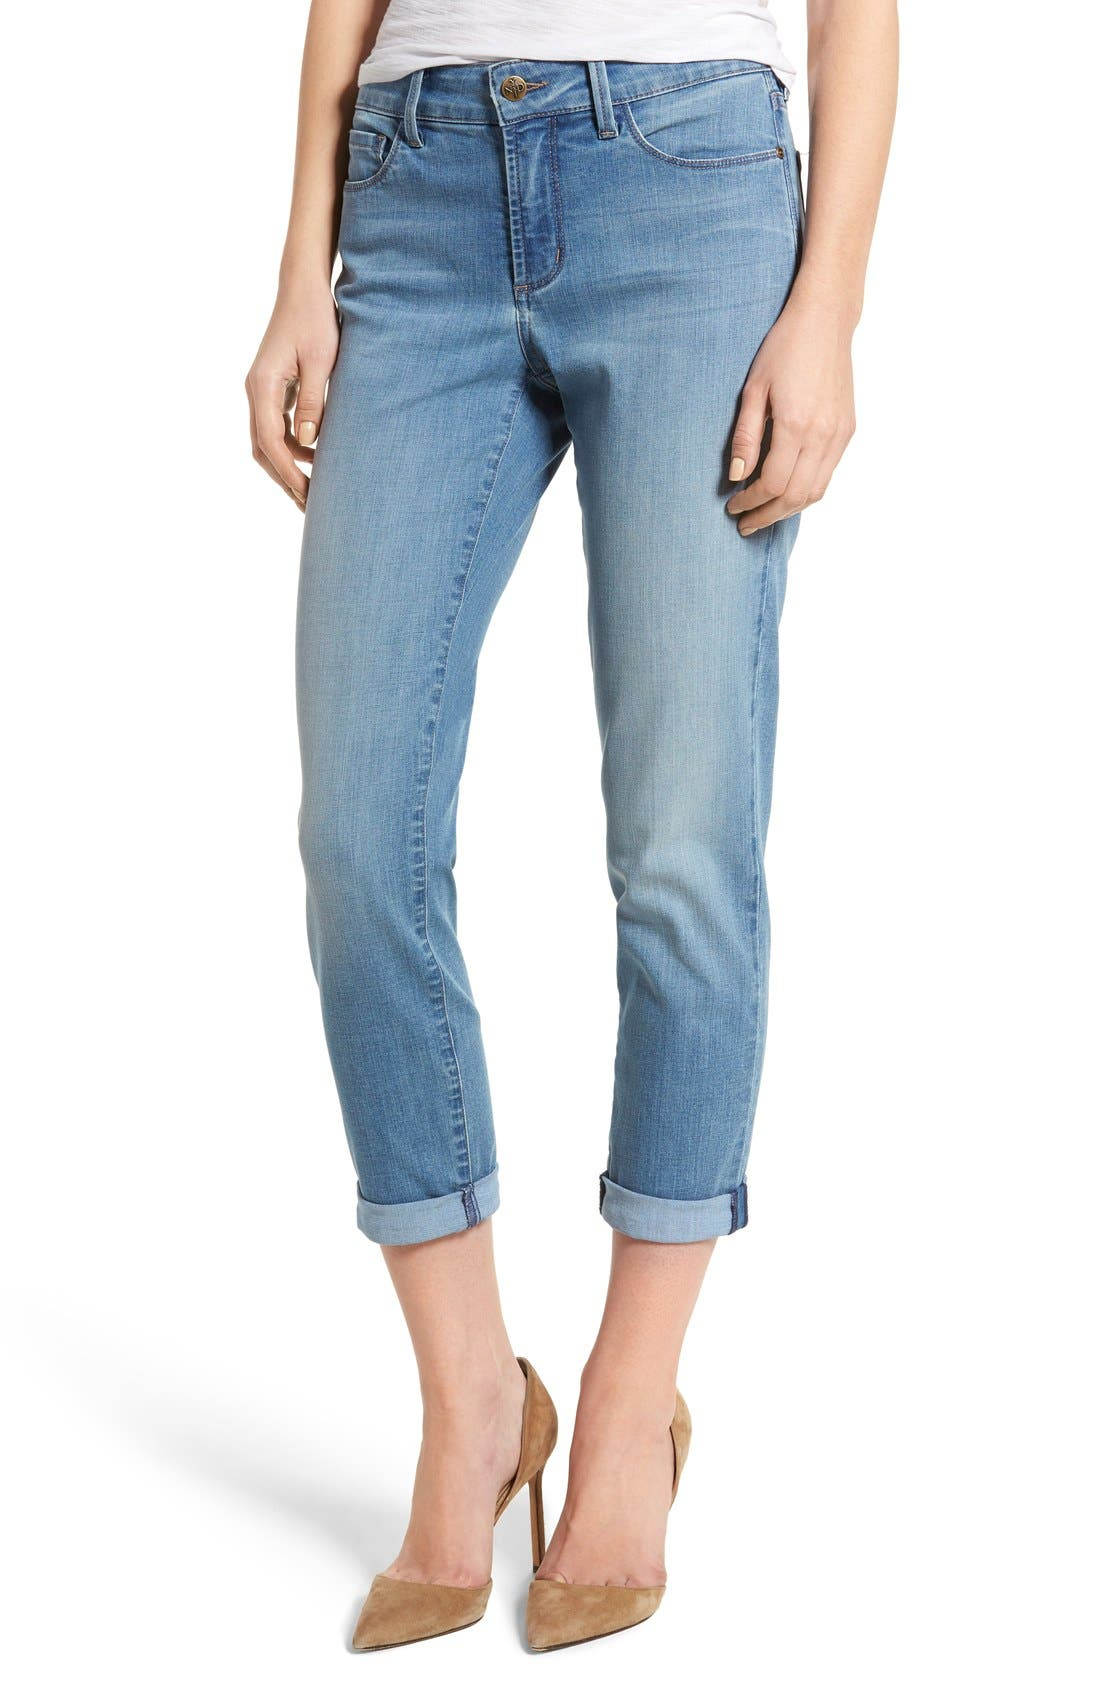 Main Image - NYDJ Alina Roll Cuff Stretch Ankle Skinny Jeans (Pampelonne) (Regular & Petite)